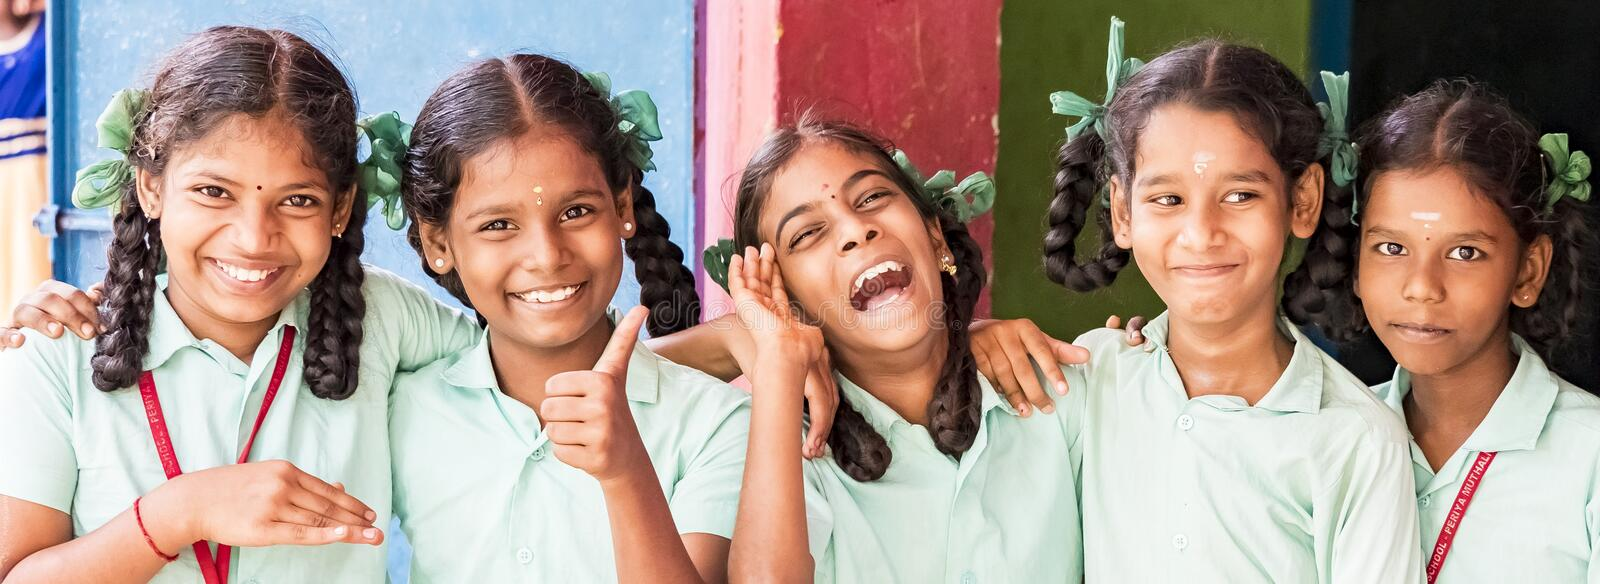 Best children friends girls classmates smiling laughing standing with hand on shoulder at the school. Multiethnic school kids royalty free stock photo